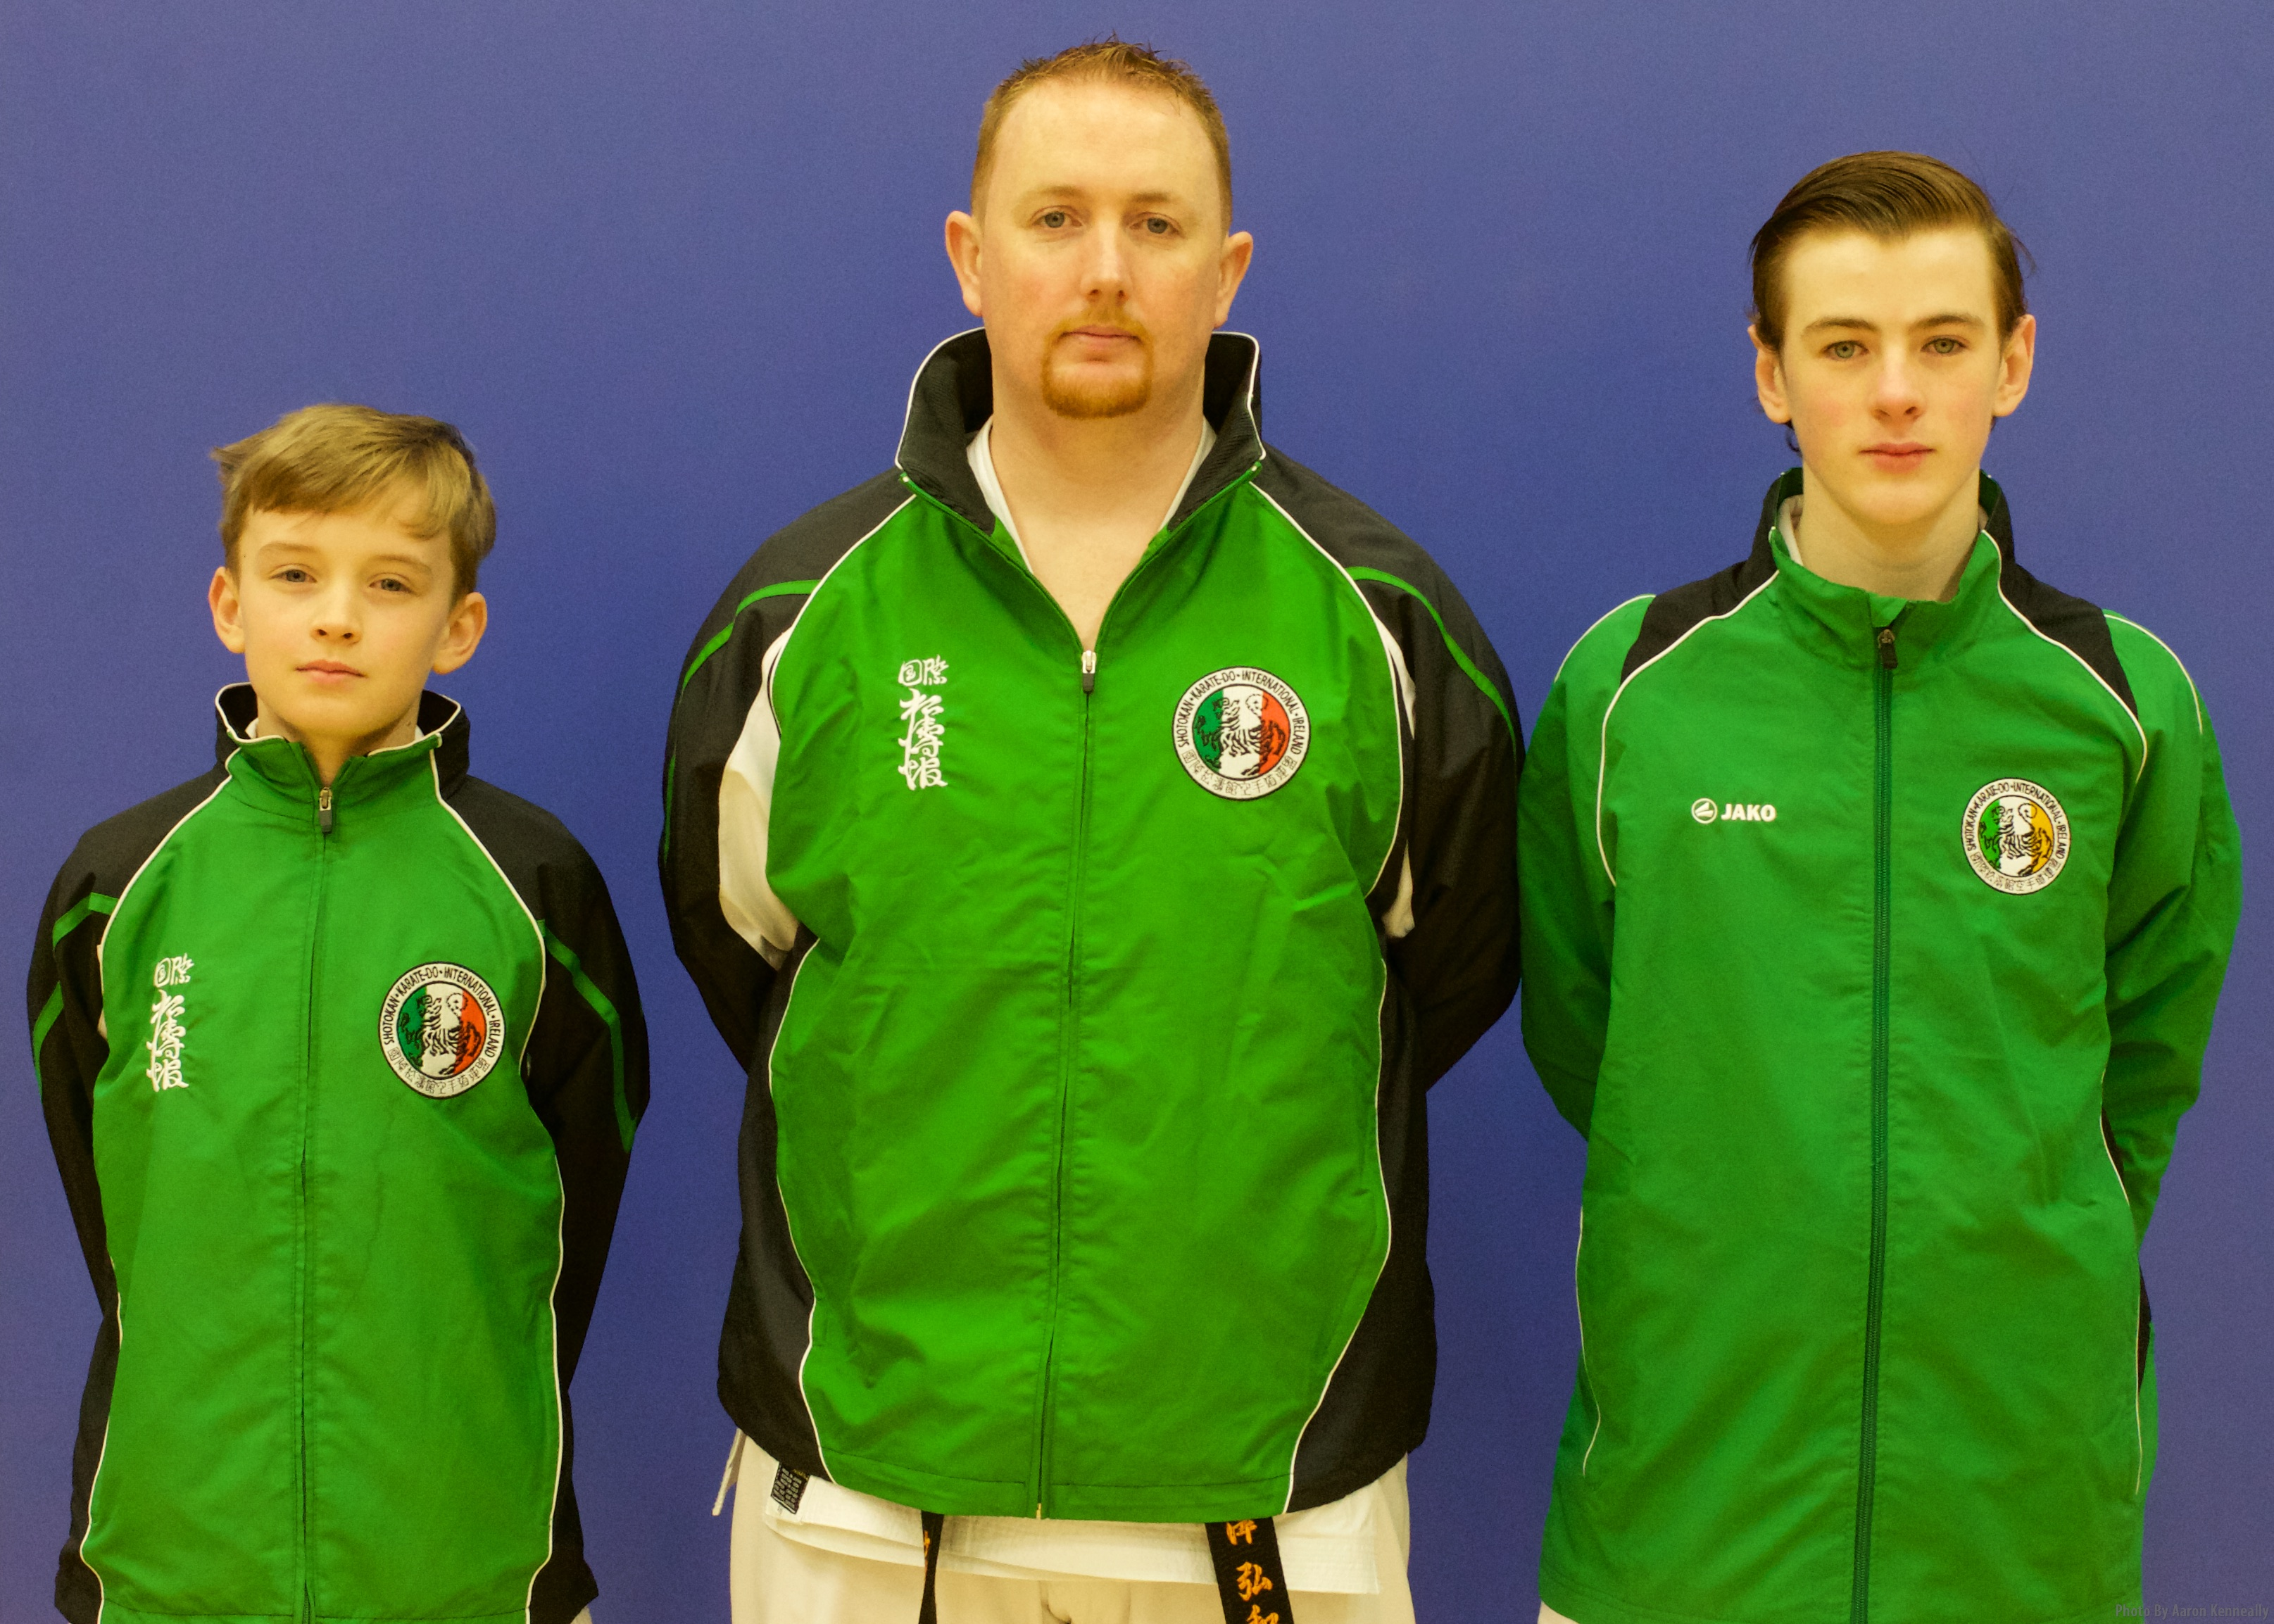 Bushido Karate Club members Sensei Aaron Kenneally, Tom O Brien and Oisin O Sullivan have been selected to represent SKIF Ireland at the SKIF World Championships in Jakarta, Indonesia in August 2016